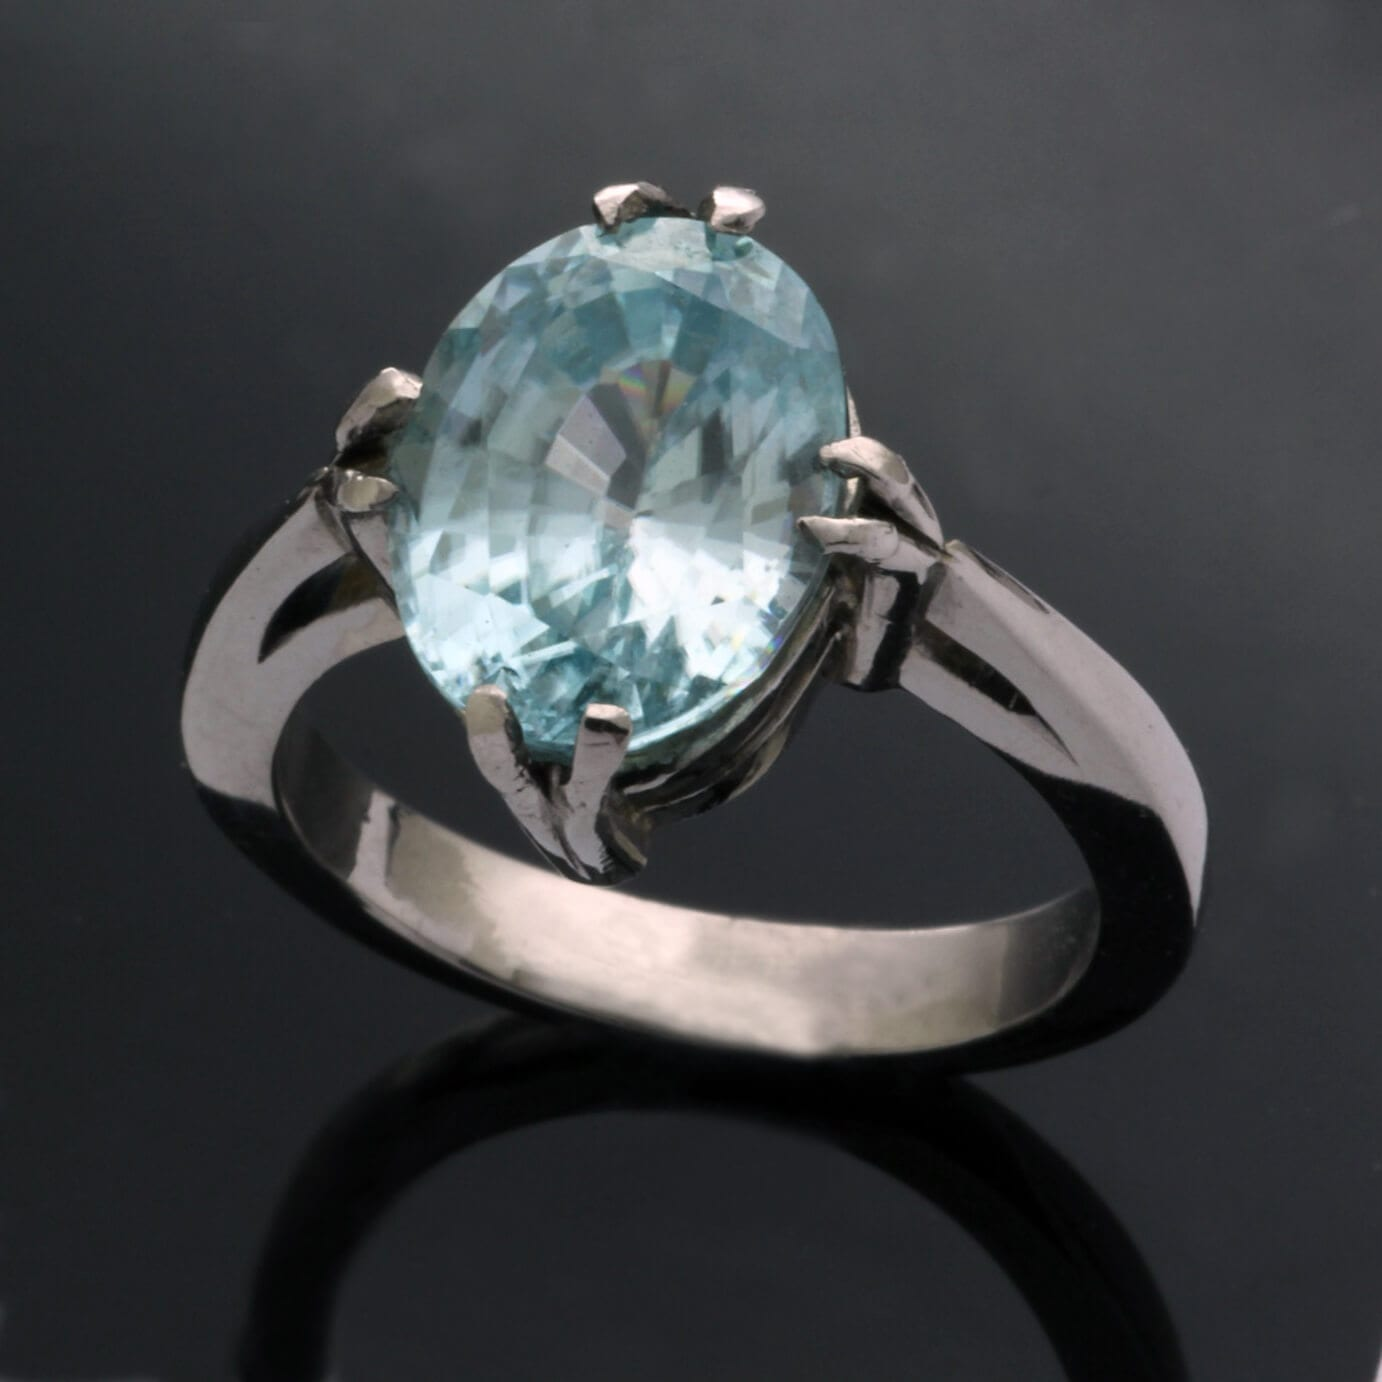 Sleek stylish contemporary Palladium and Zircon gem statement ring